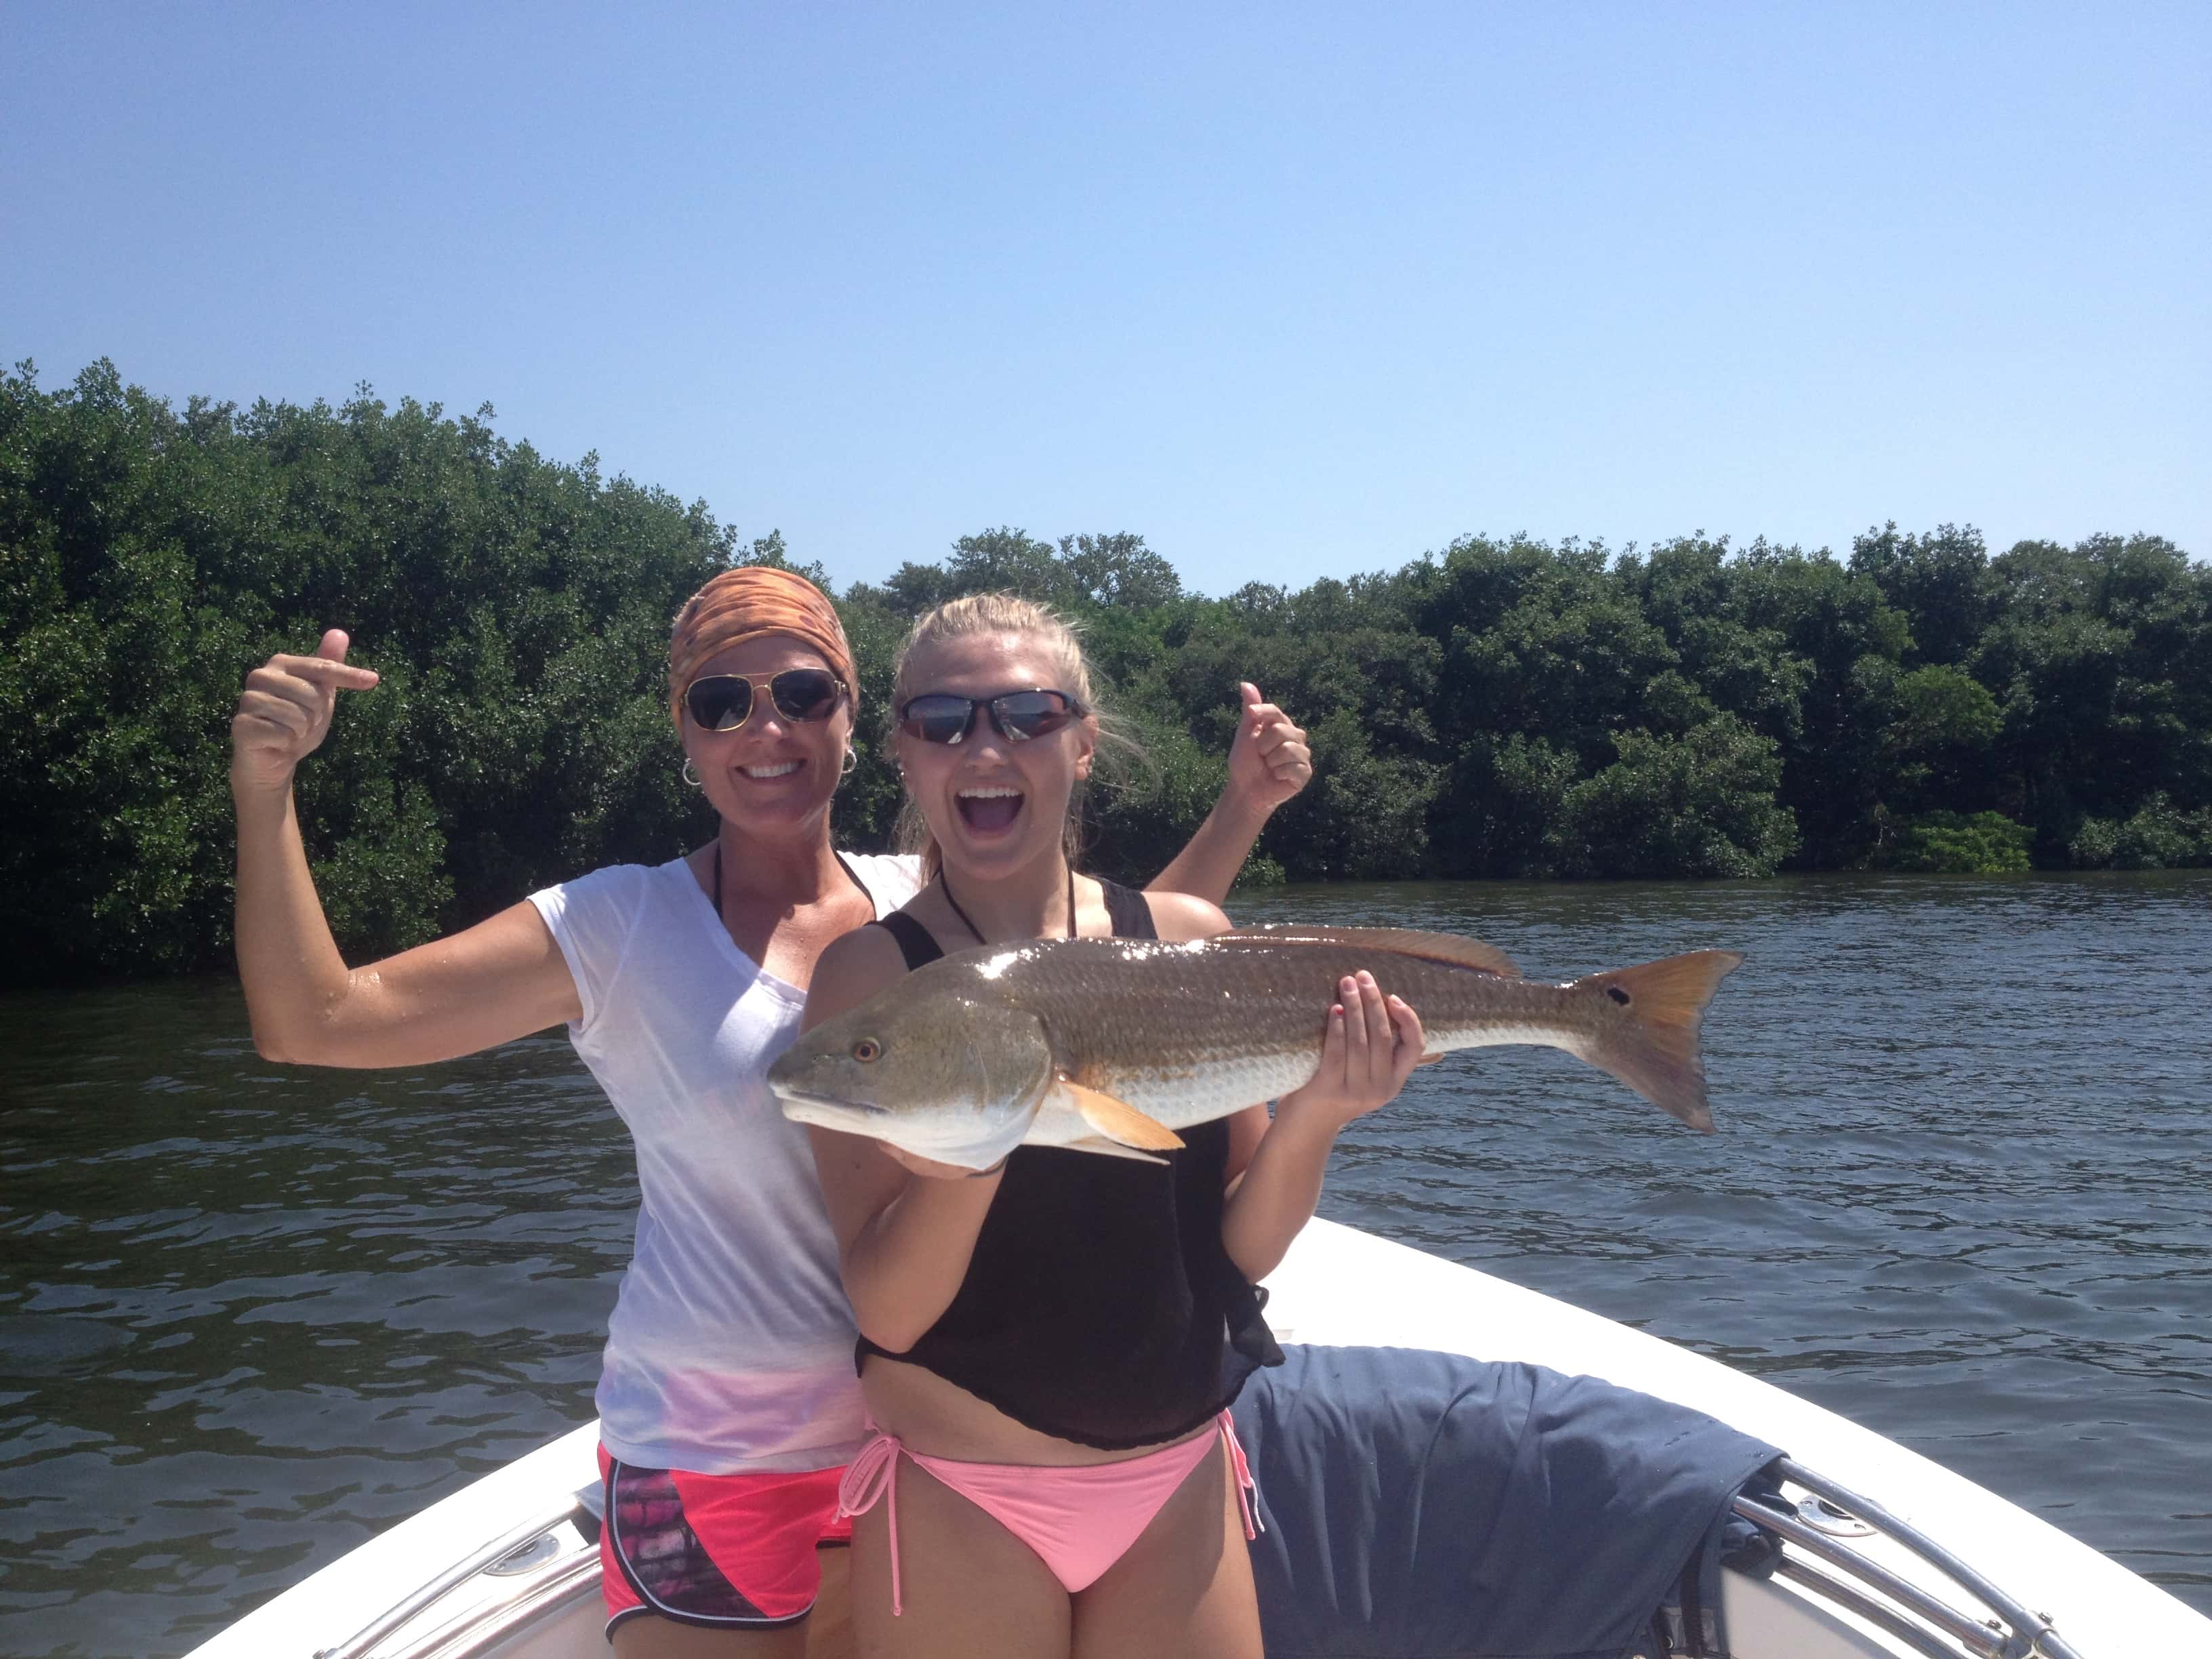 trout girls See the full gallery on thechivecom probably the best site in the world submit more grab your rod, these girls wanna go fishing (37 photos) share.